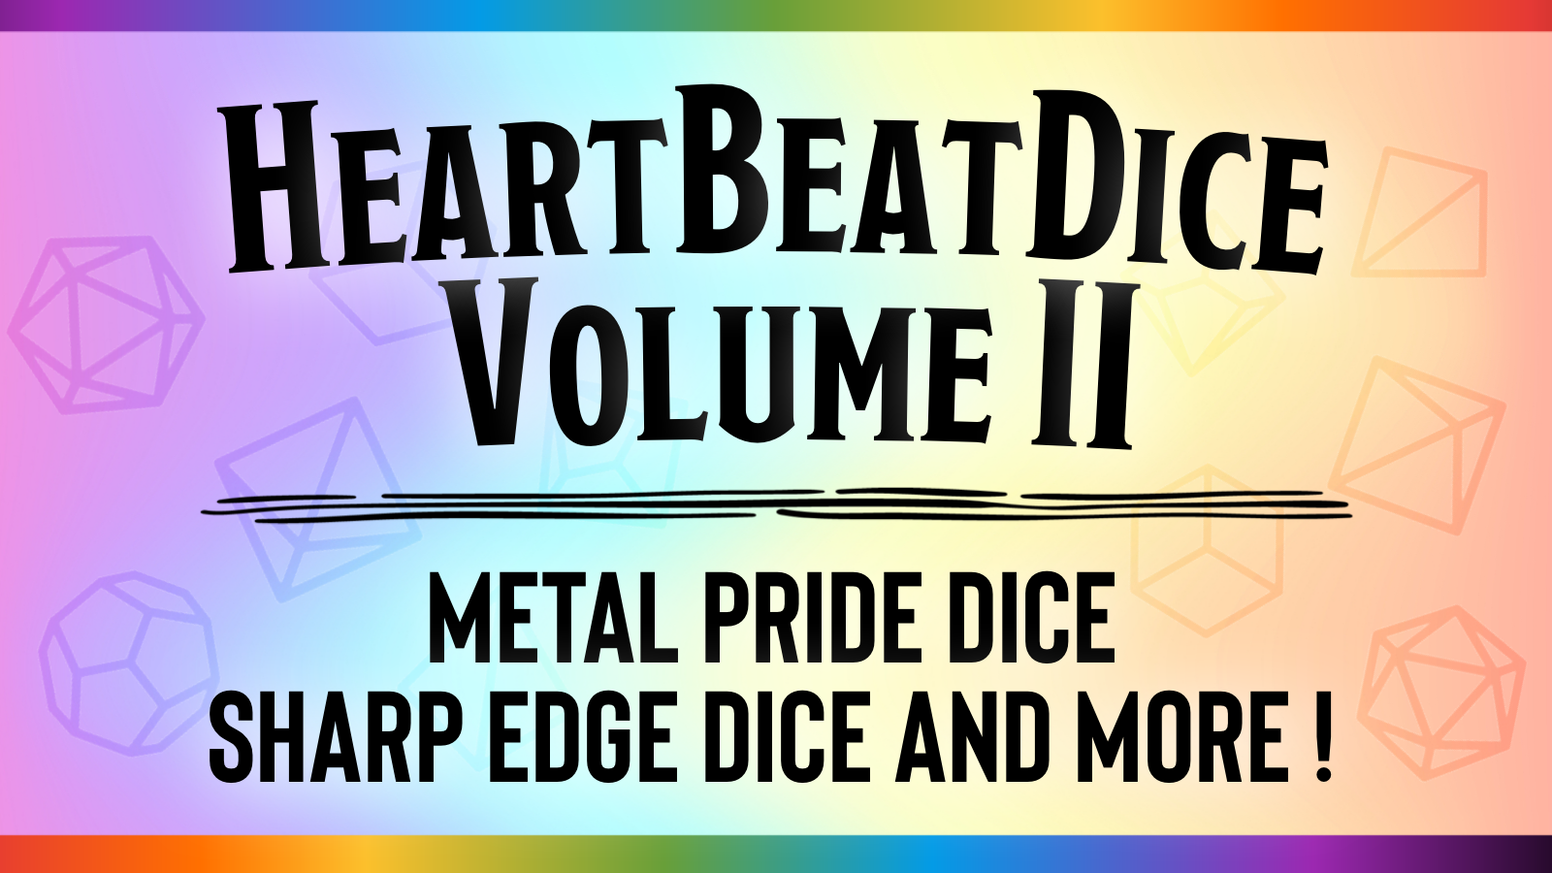 A custom line of Metal Pride Dice and Sharp Edge Pride Dice with some added treats!